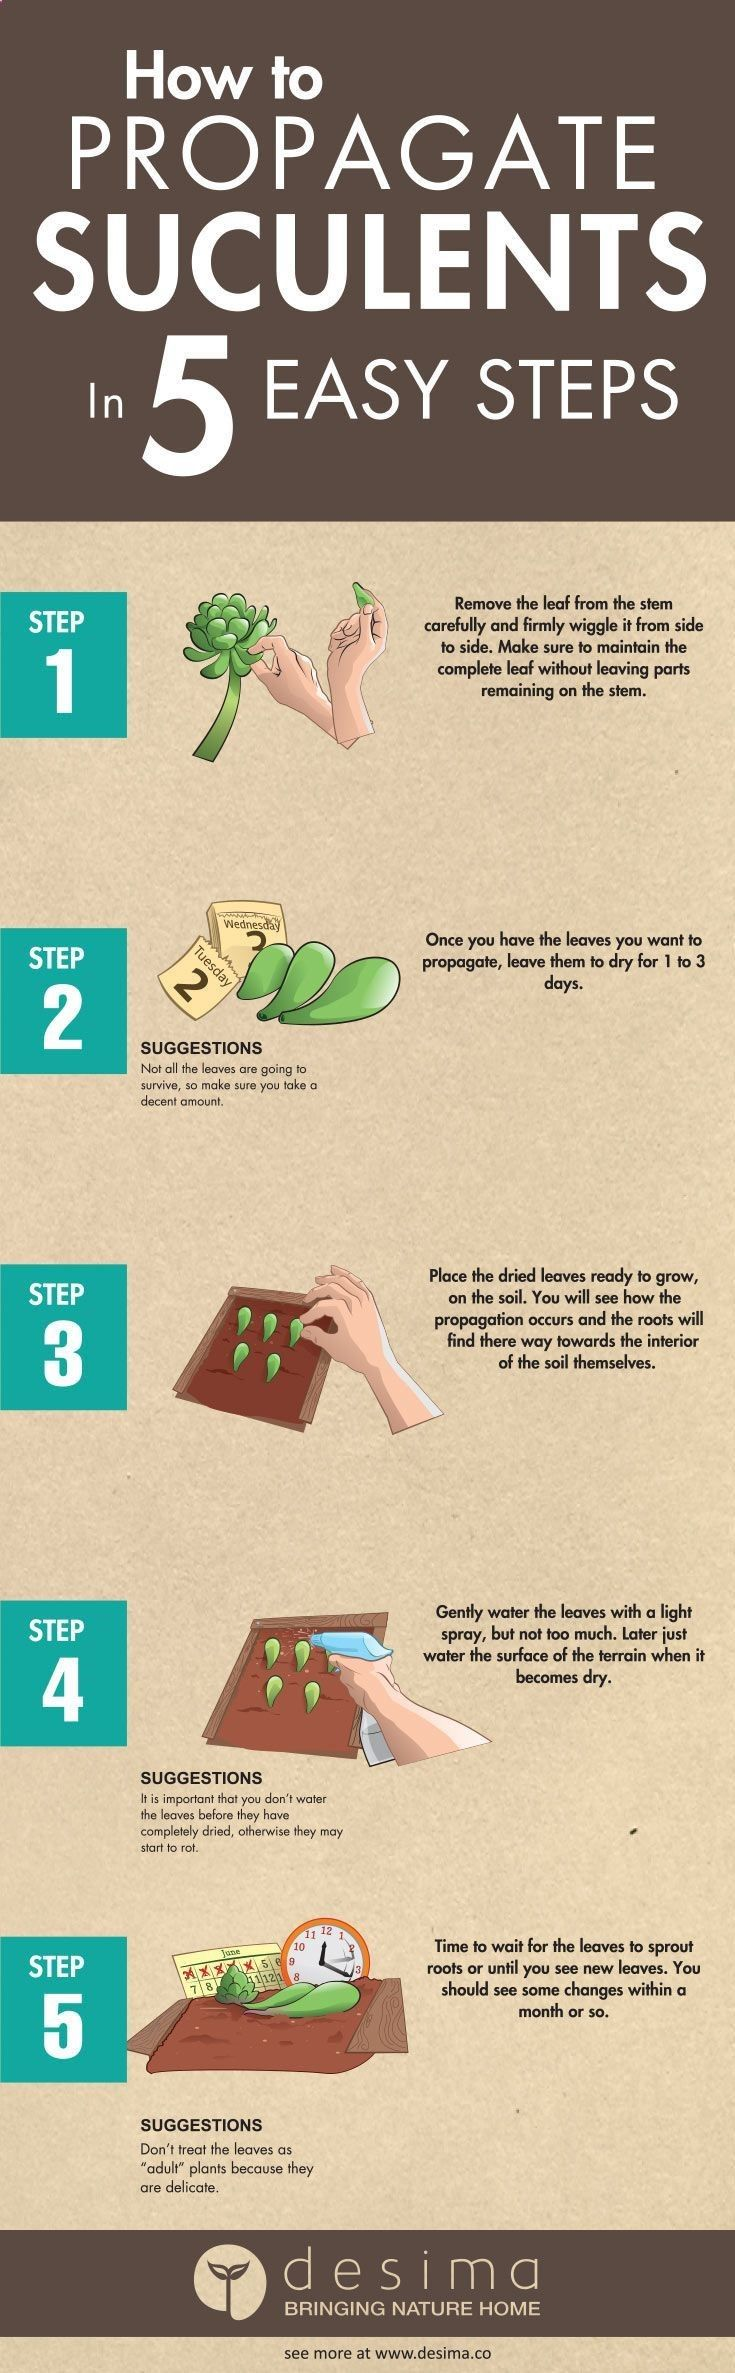 5 easy steps to get a girlfriend